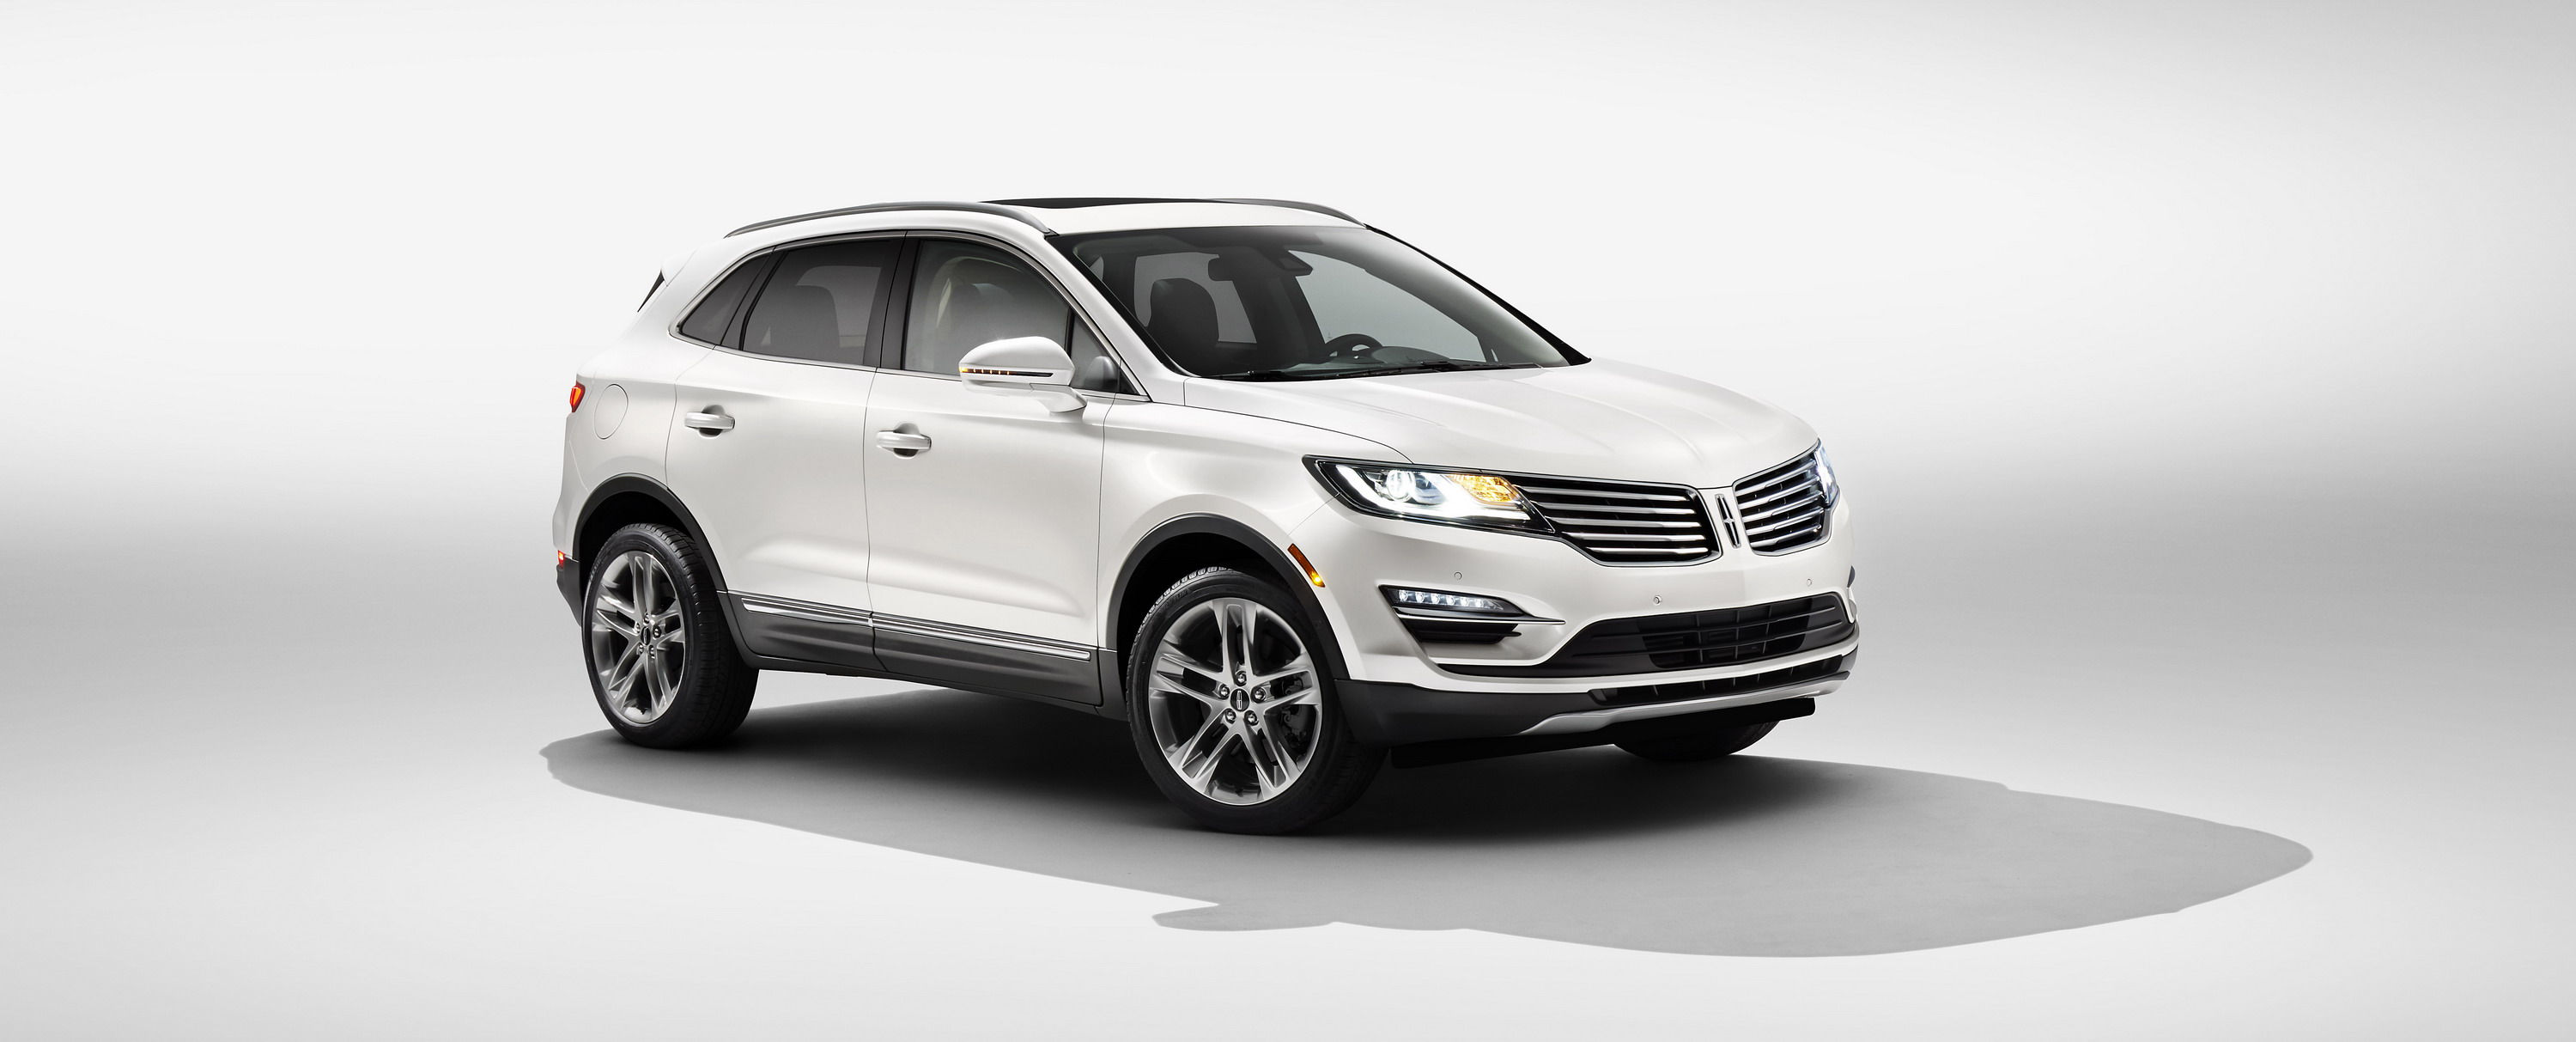 en suv lincolnmedia small mkc amps lincoln content up style connectivity roadside to out hr stand news new lna assistance us